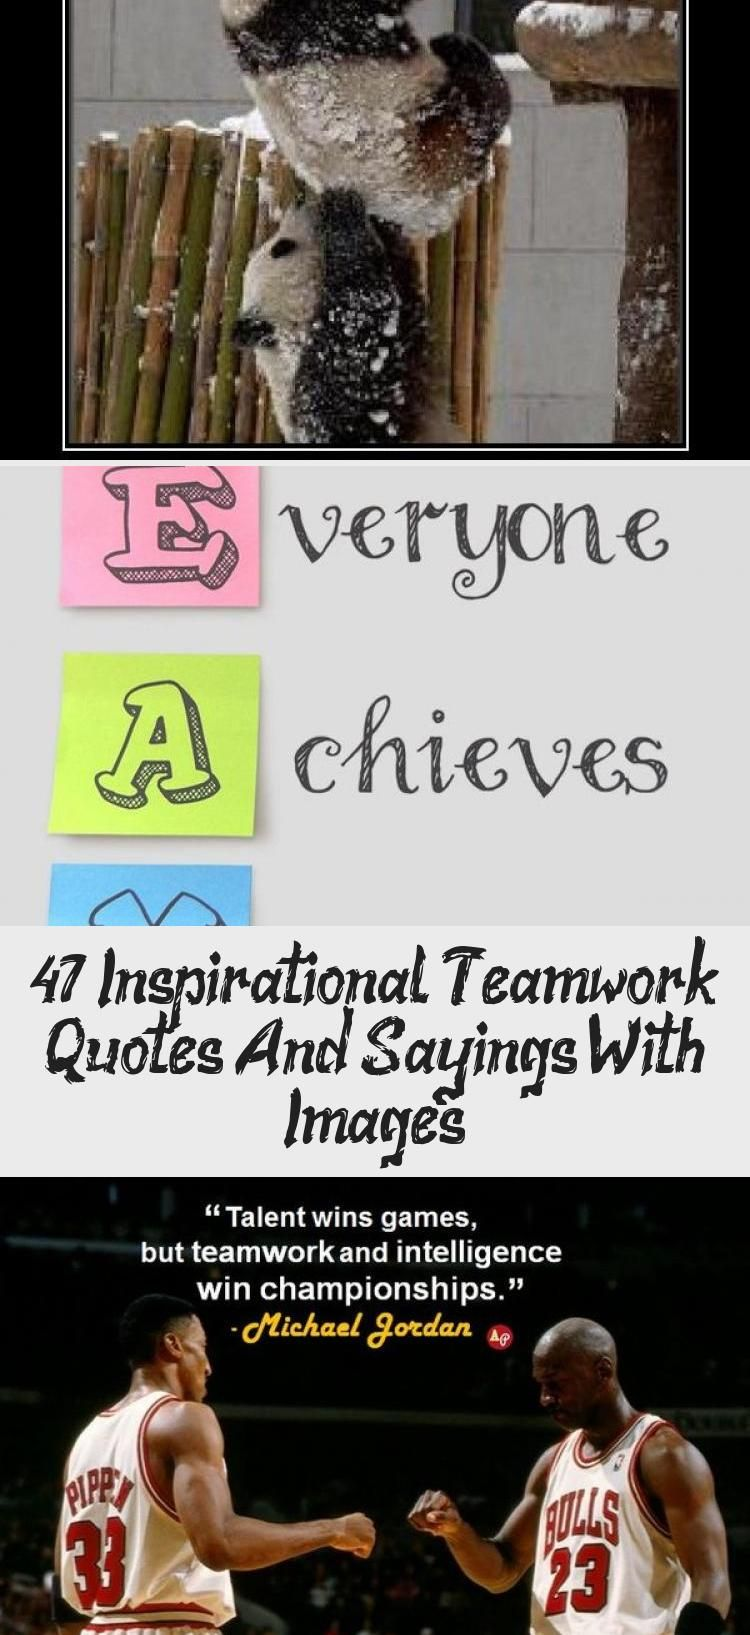 The Most Inspirational Famous And Funny Teamwork Quotes An Sayings For Sports For Teachers In 2020 Inspirational Teamwork Quotes Teamwork Quotes Funny Teamwork Quote